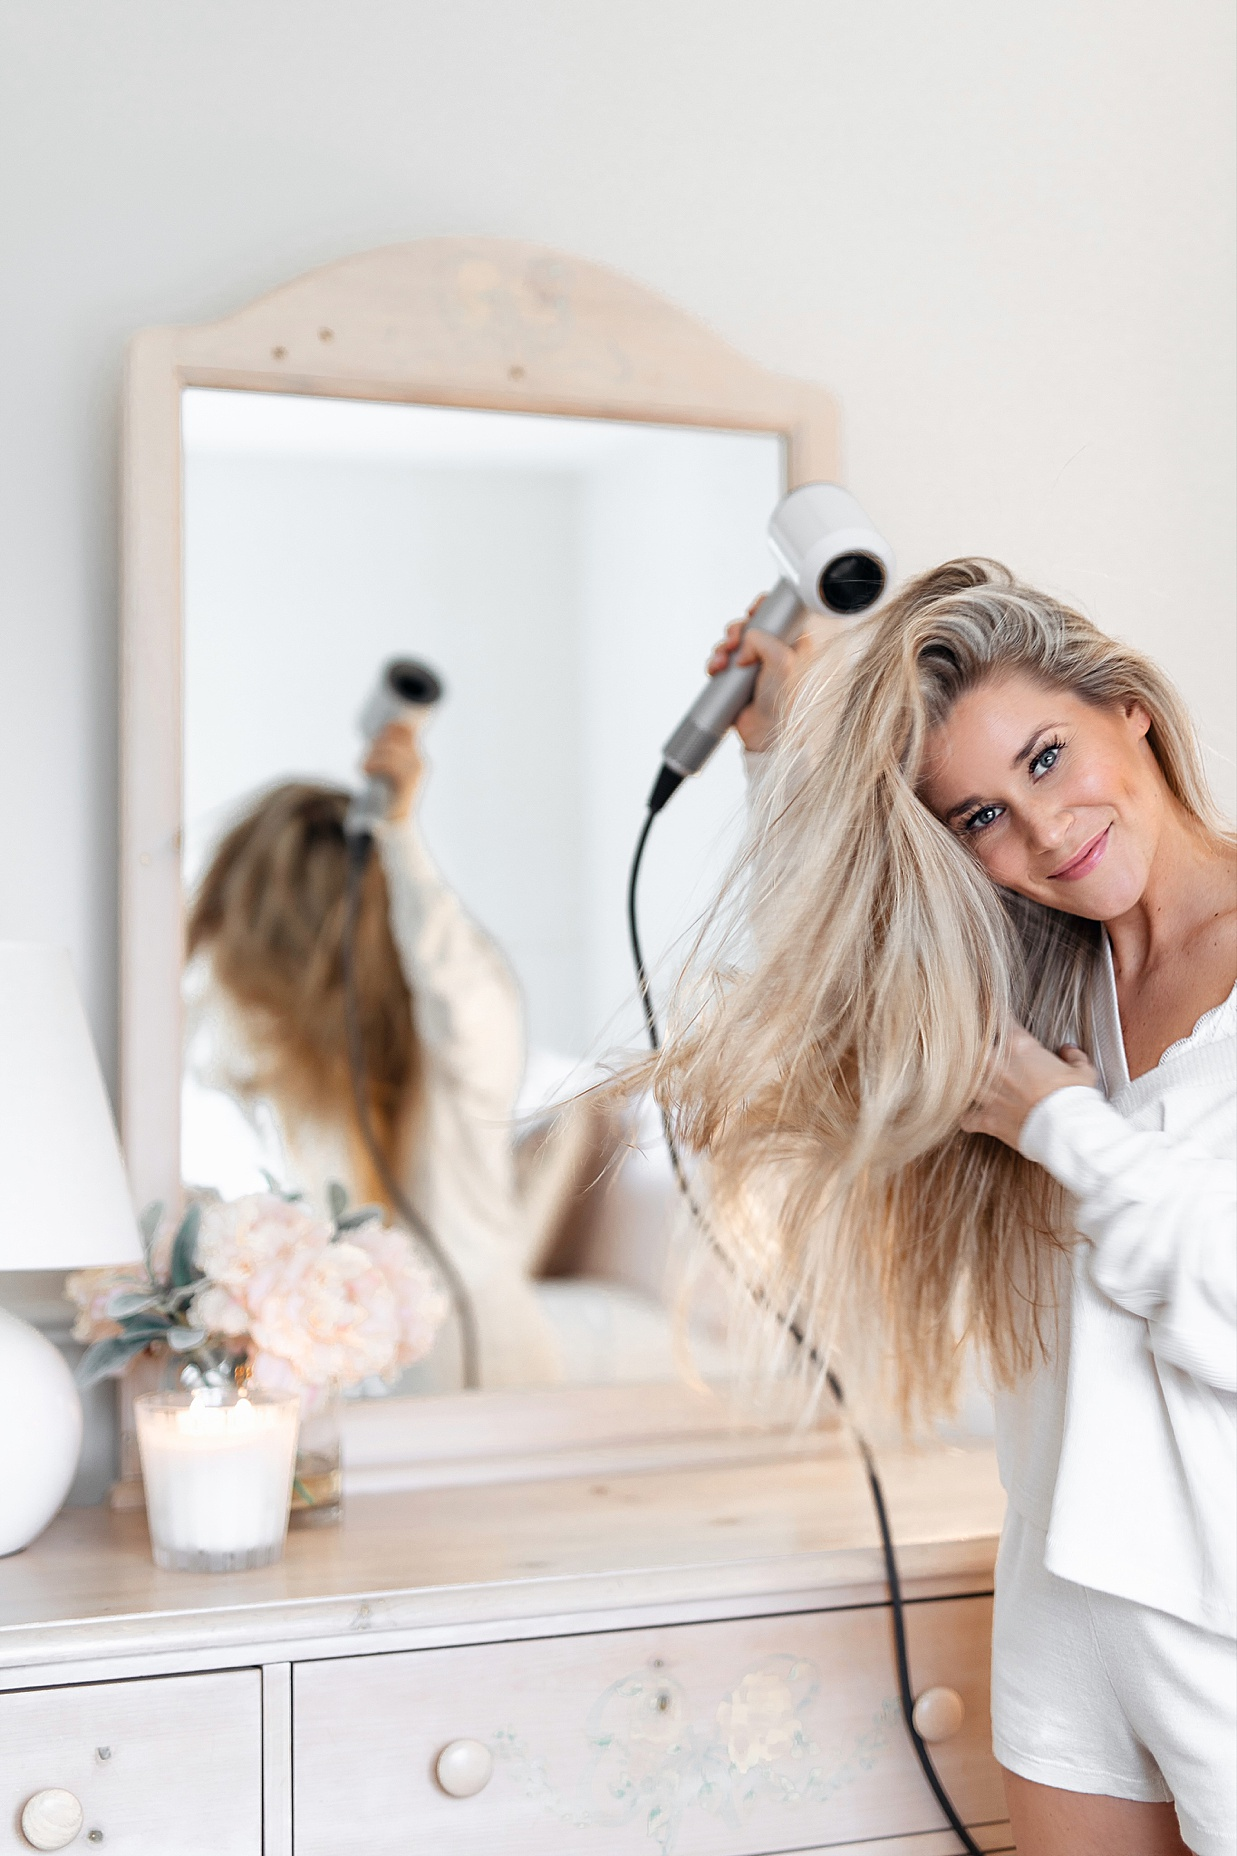 dyson hairdryer, dyson hairdryer review, dyson hair dryer, dyson hair dryer review, blogger dyson hairdryer, olivia rink dyson hair dryer, olivia rink hair, olivia rink hair dryer, dyson supersonic hair dryer, dryson supersonic, olivia rink hair tips